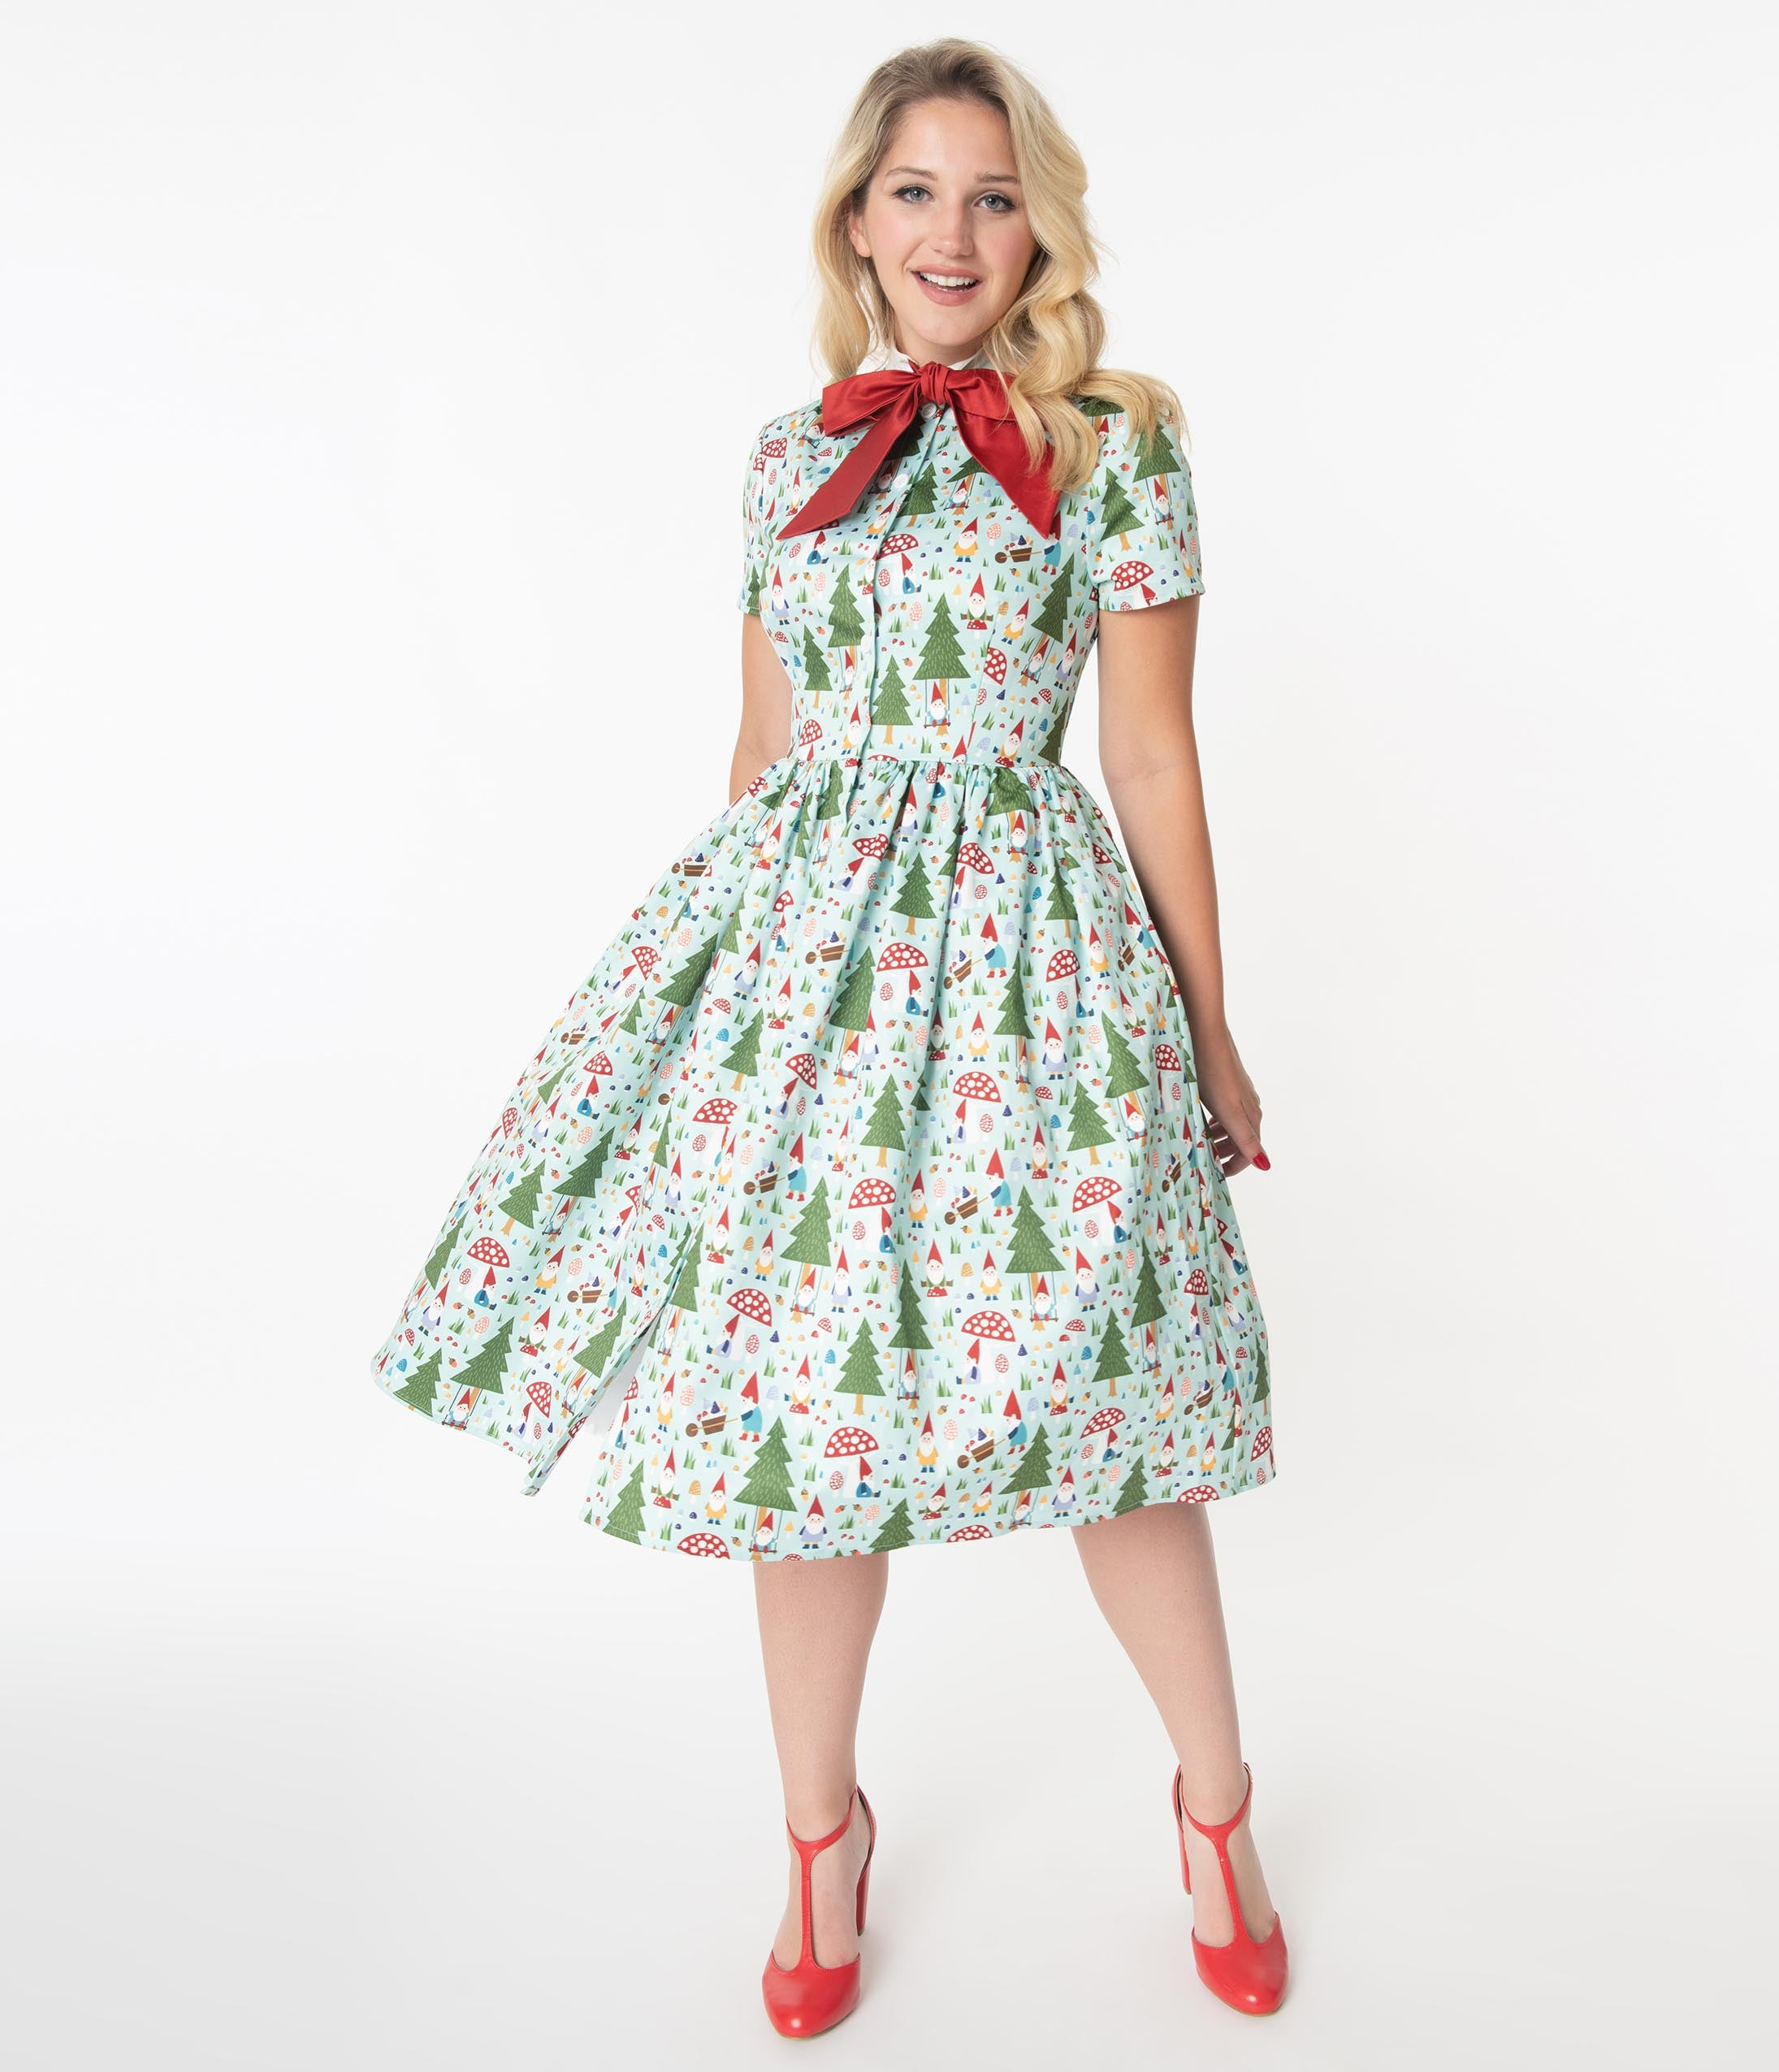 Vintage Style Dresses | Vintage Inspired Dresses Unique Vintage 1950S Forest Gnome Scene Cora Swing Dress $110.00 AT vintagedancer.com